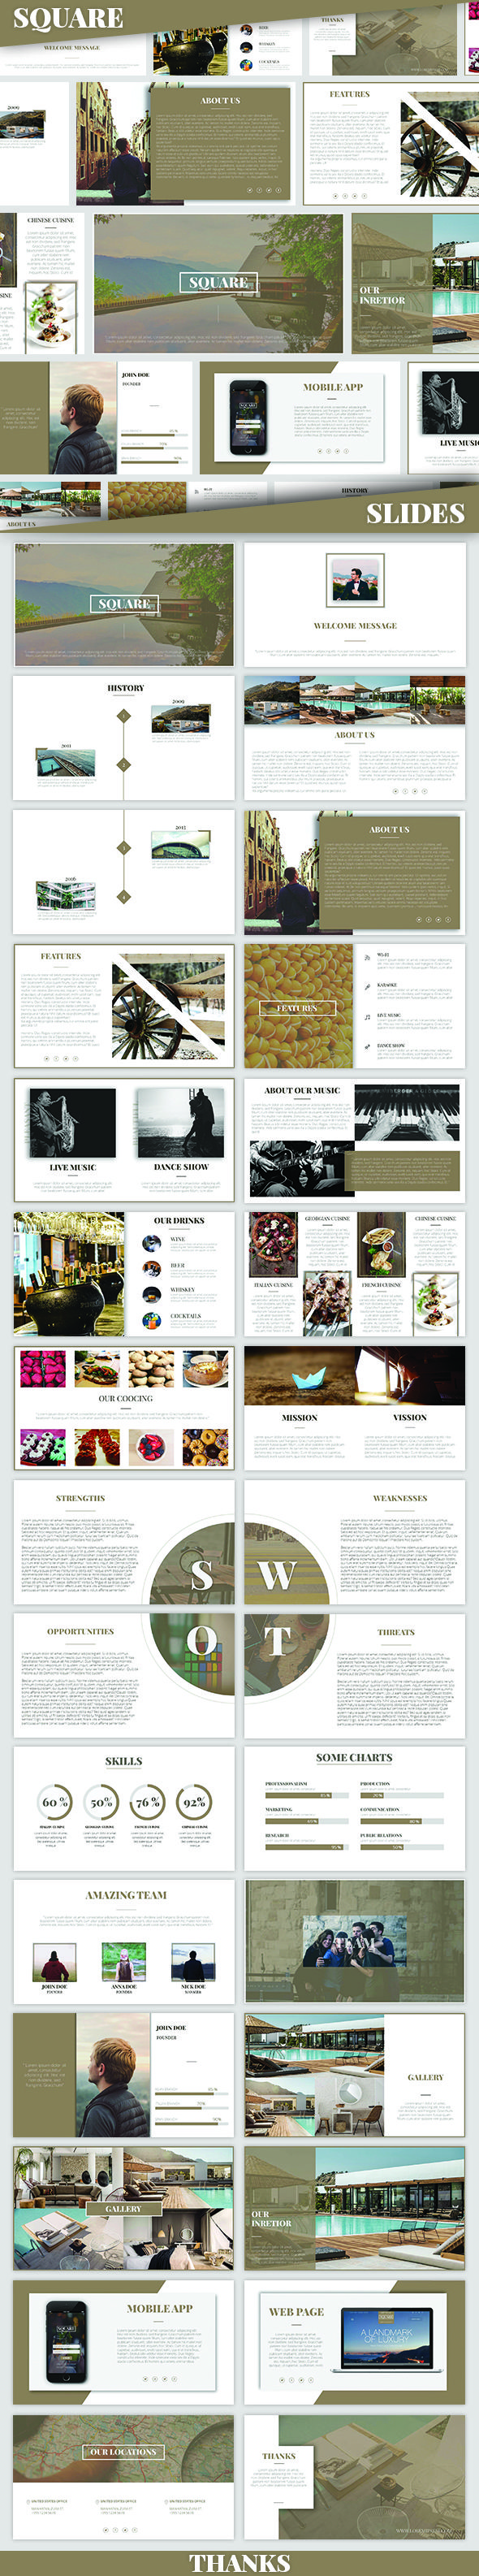 Best BookletBrochure Layout Design Images On Pinterest Page - Best of hotel presentation template ideas